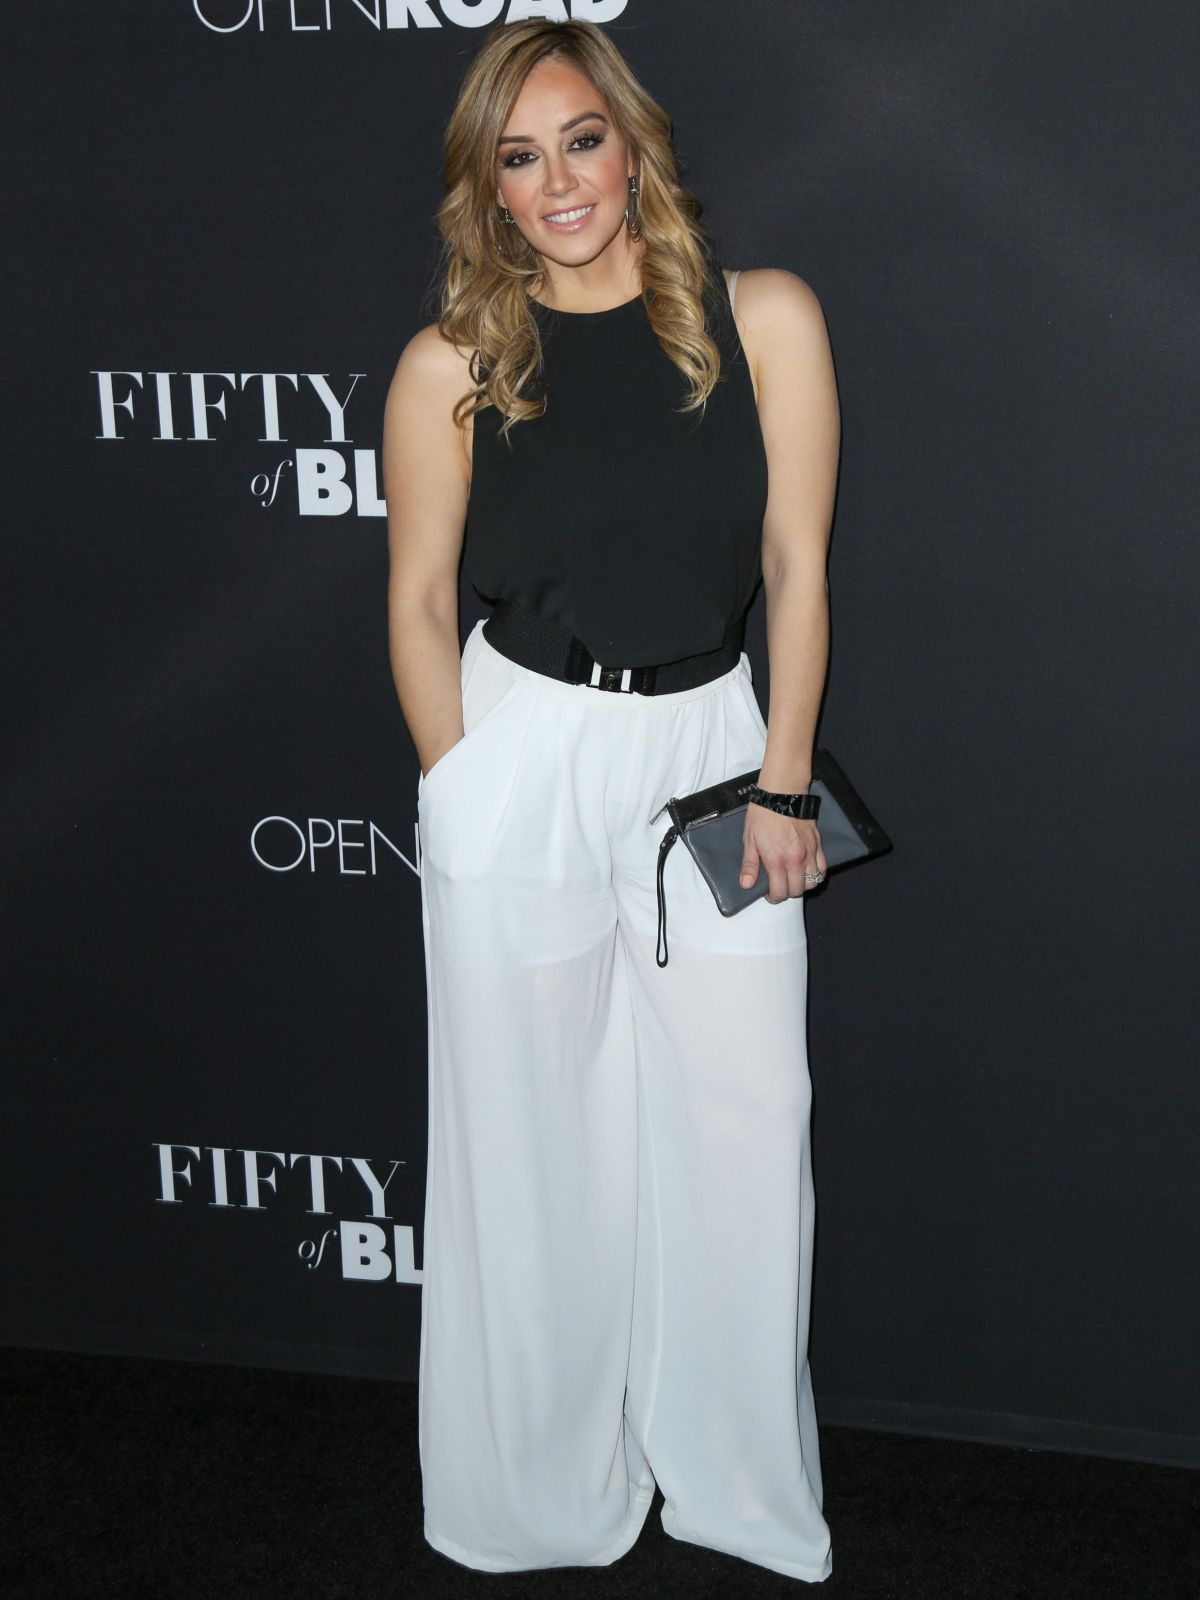 ROSIE RIVERA at Fifty Shades of Black Premiere in Los Angeles 01/26/2016